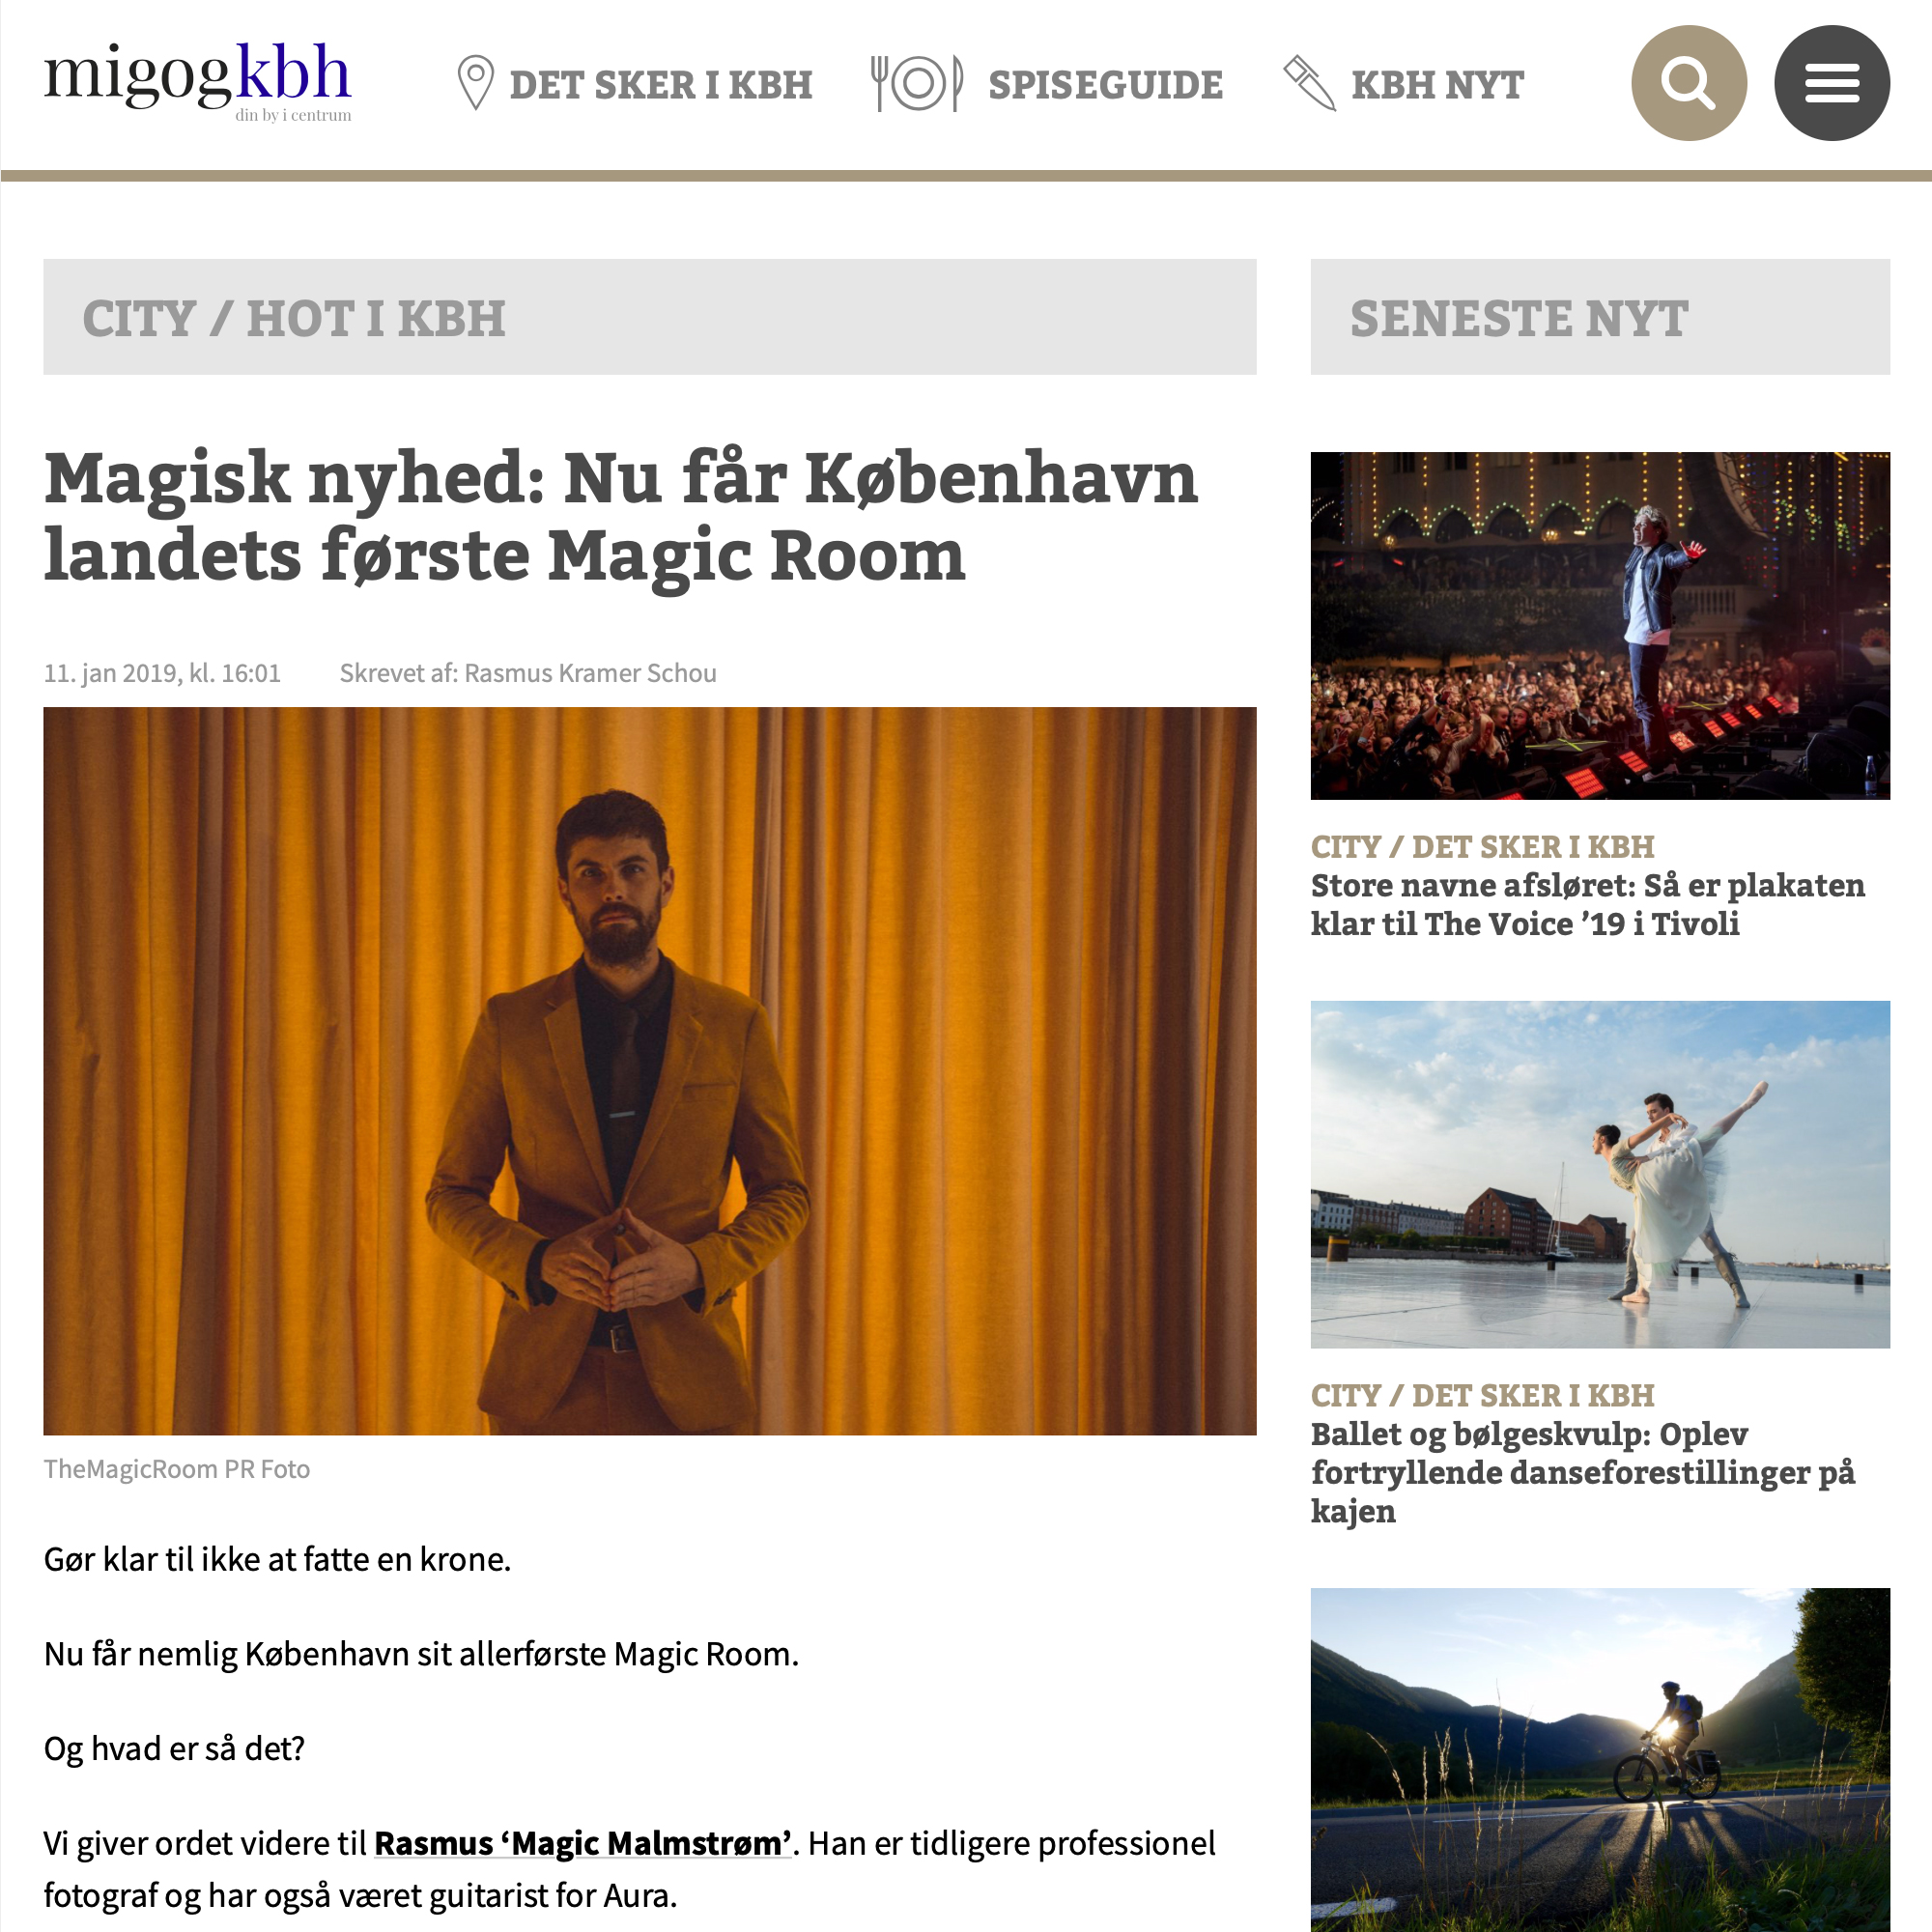 Interview with Mig og Kbh